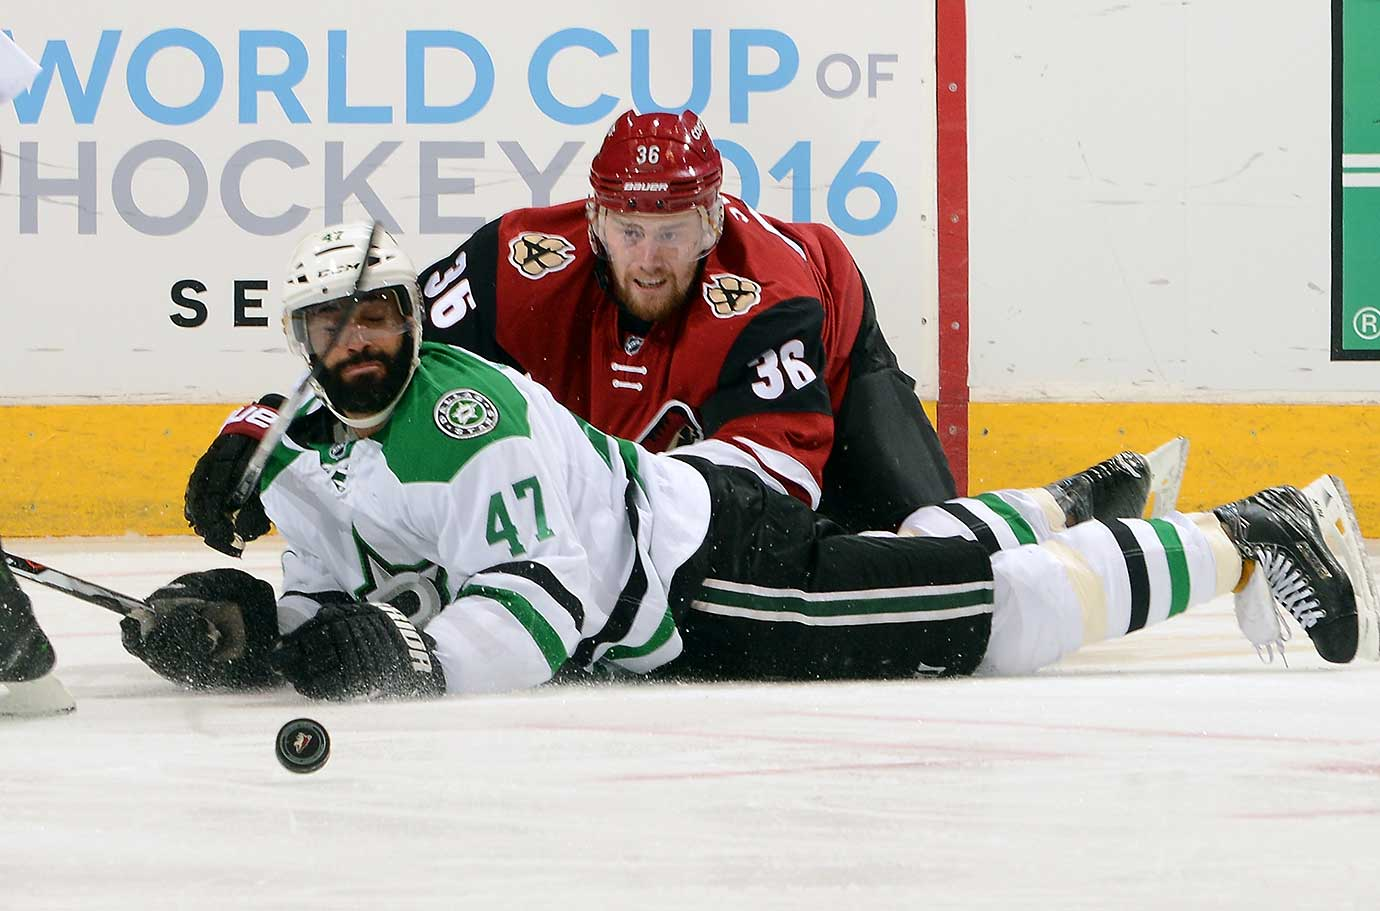 Johnny  Oduya of the Dallas Stars and Jiri Sekac of the Arizona Coyotes collide on the ice as the puck slides away.  (Photo by Norm Hall/NHLI via Getty Images)